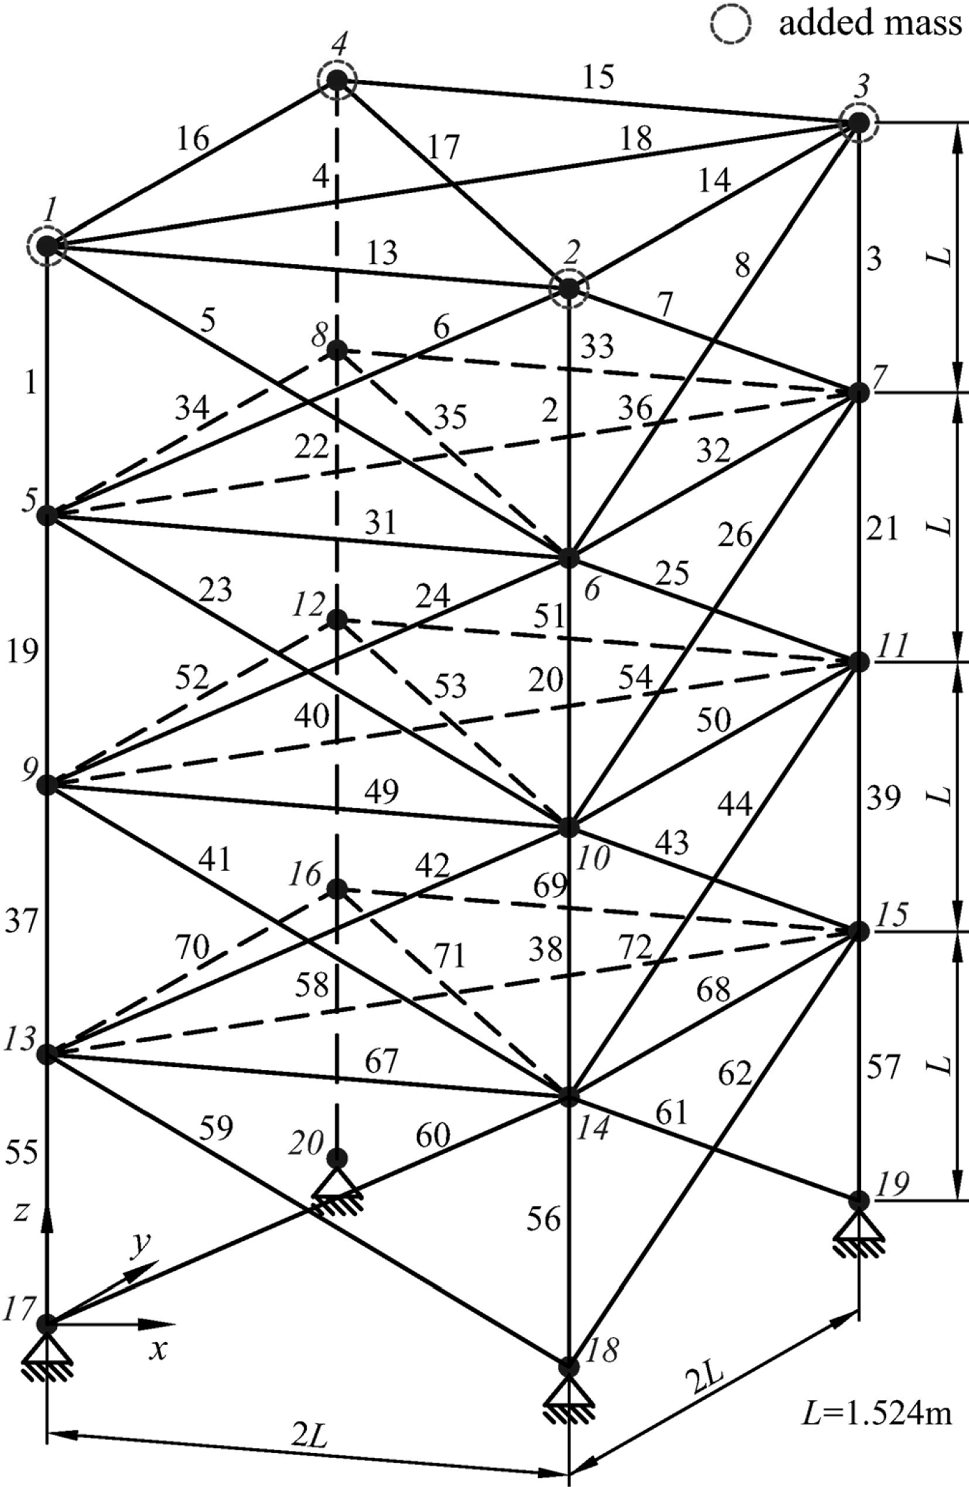 Size and Shape Optimization of Truss Structures with Natural